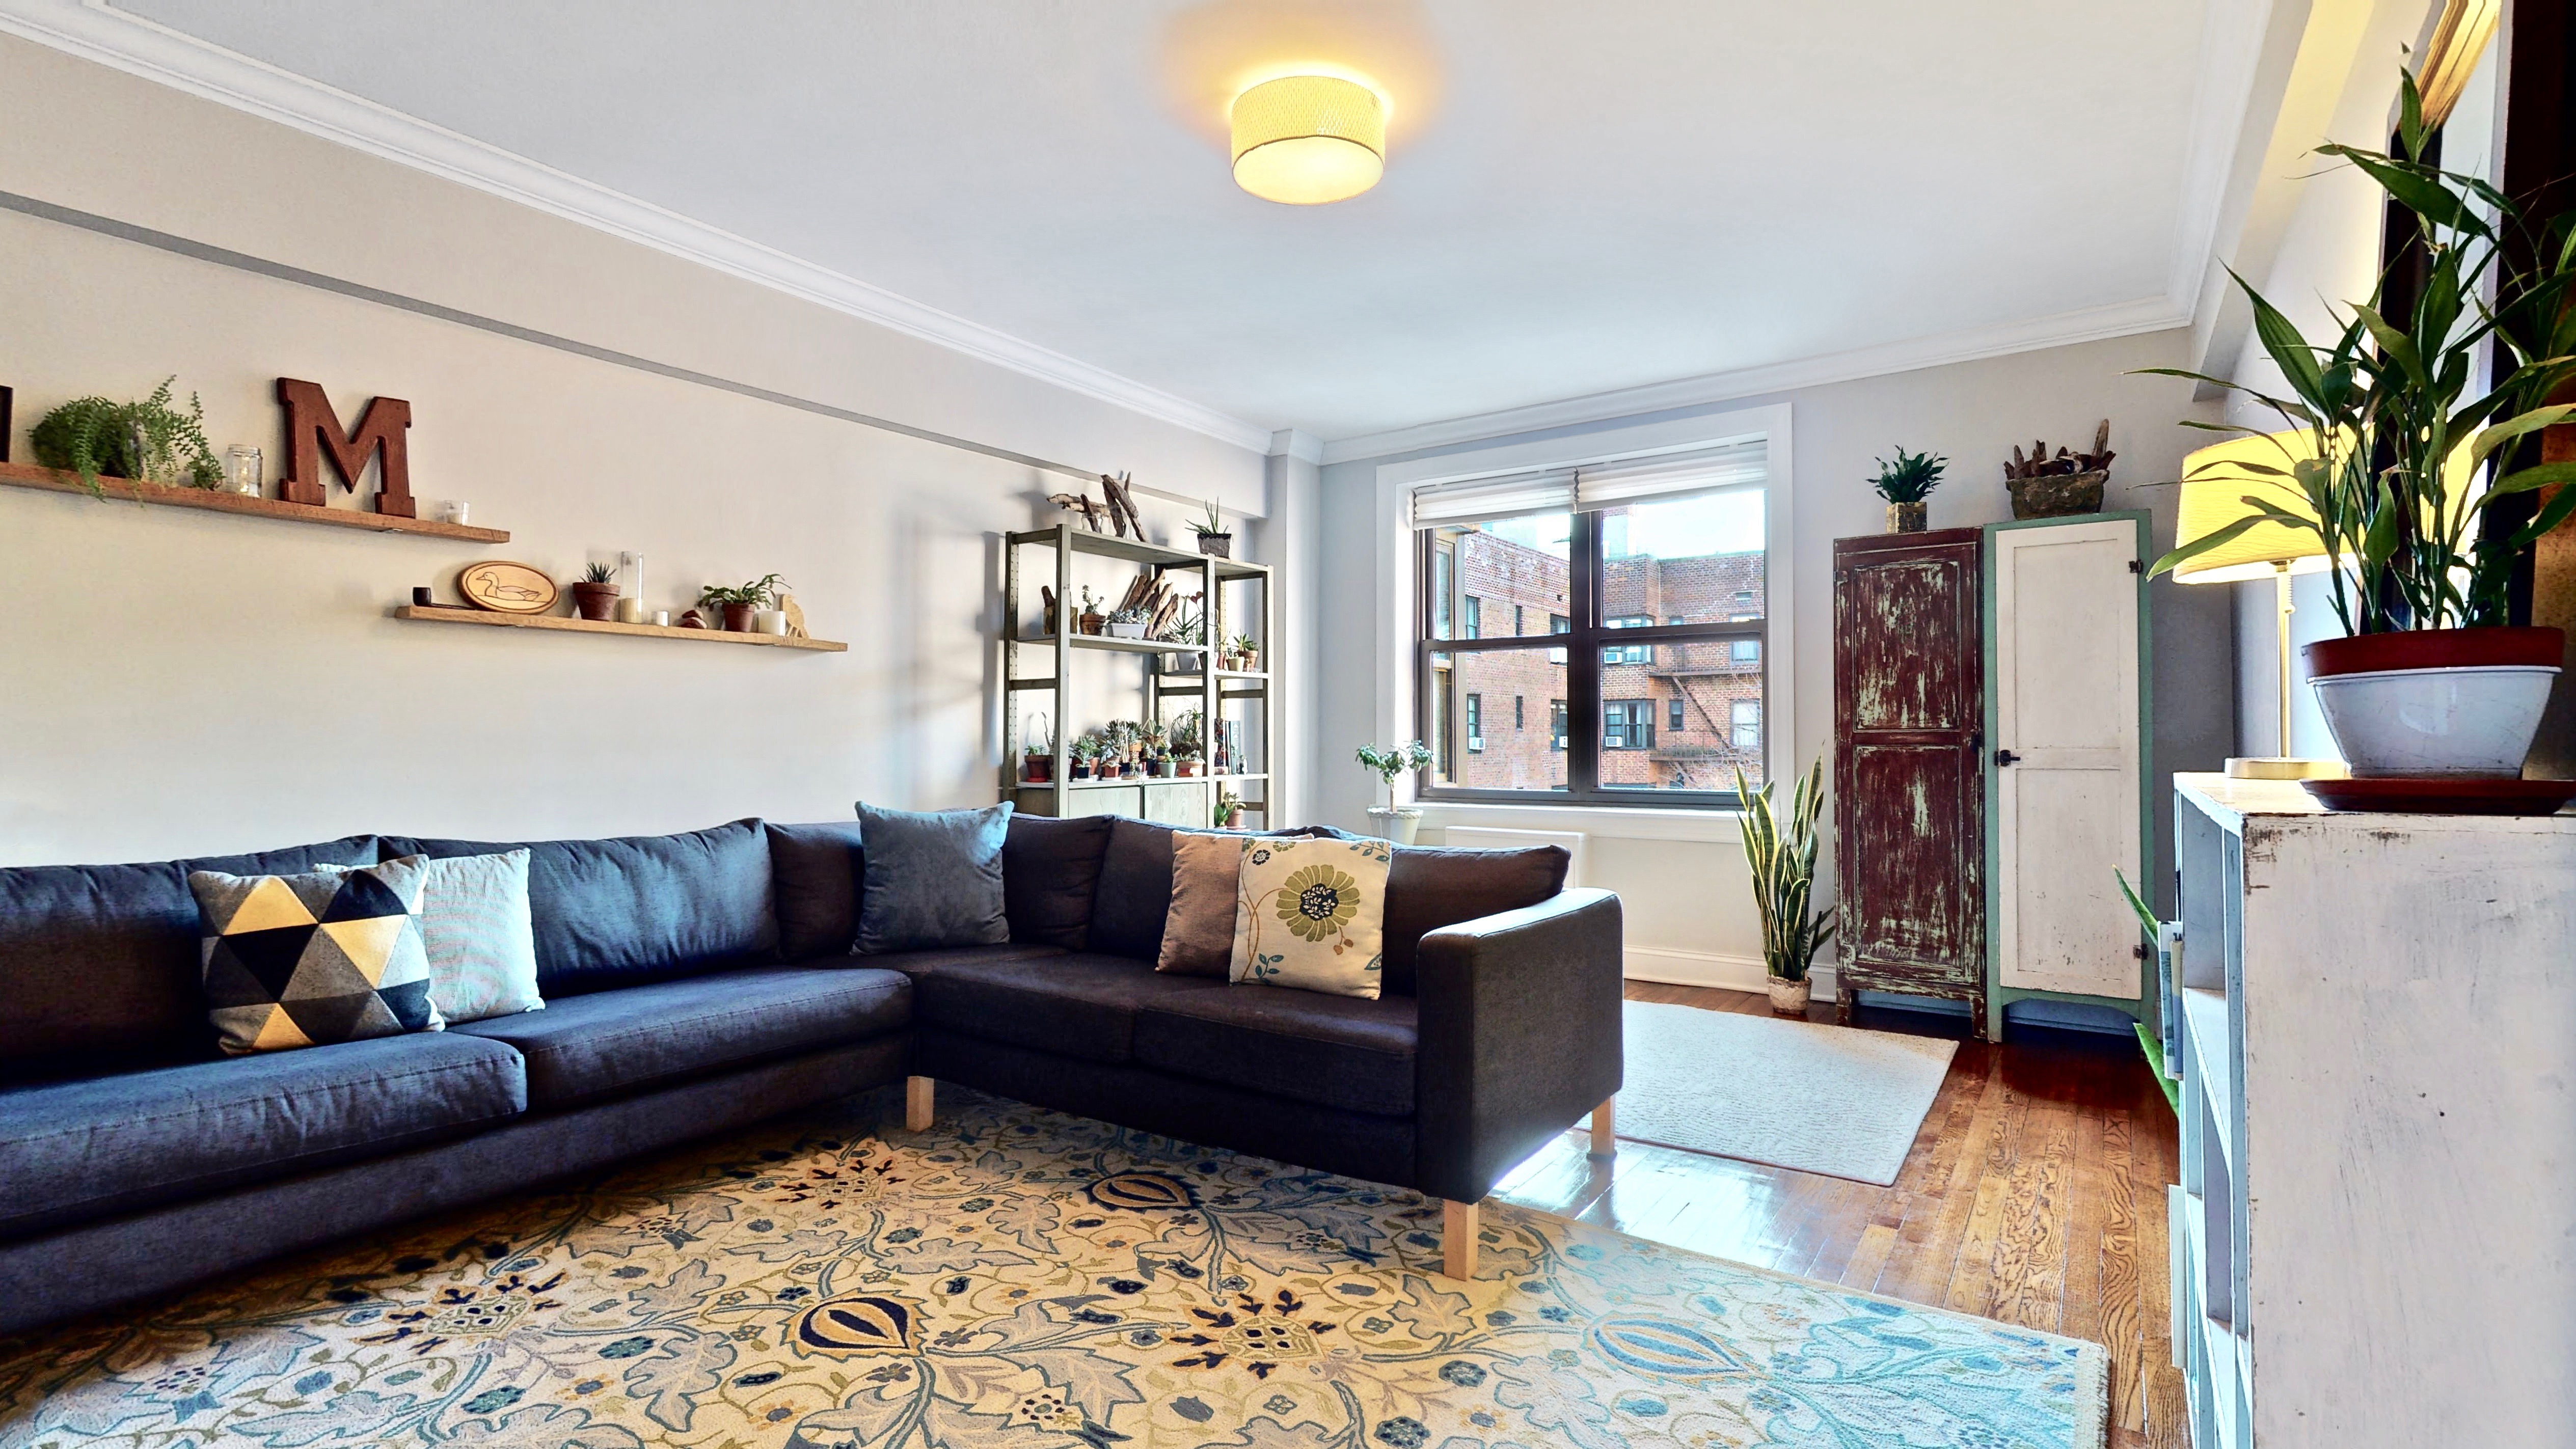 Apartment for sale at 273 Bennett Avenue, Apt 7F